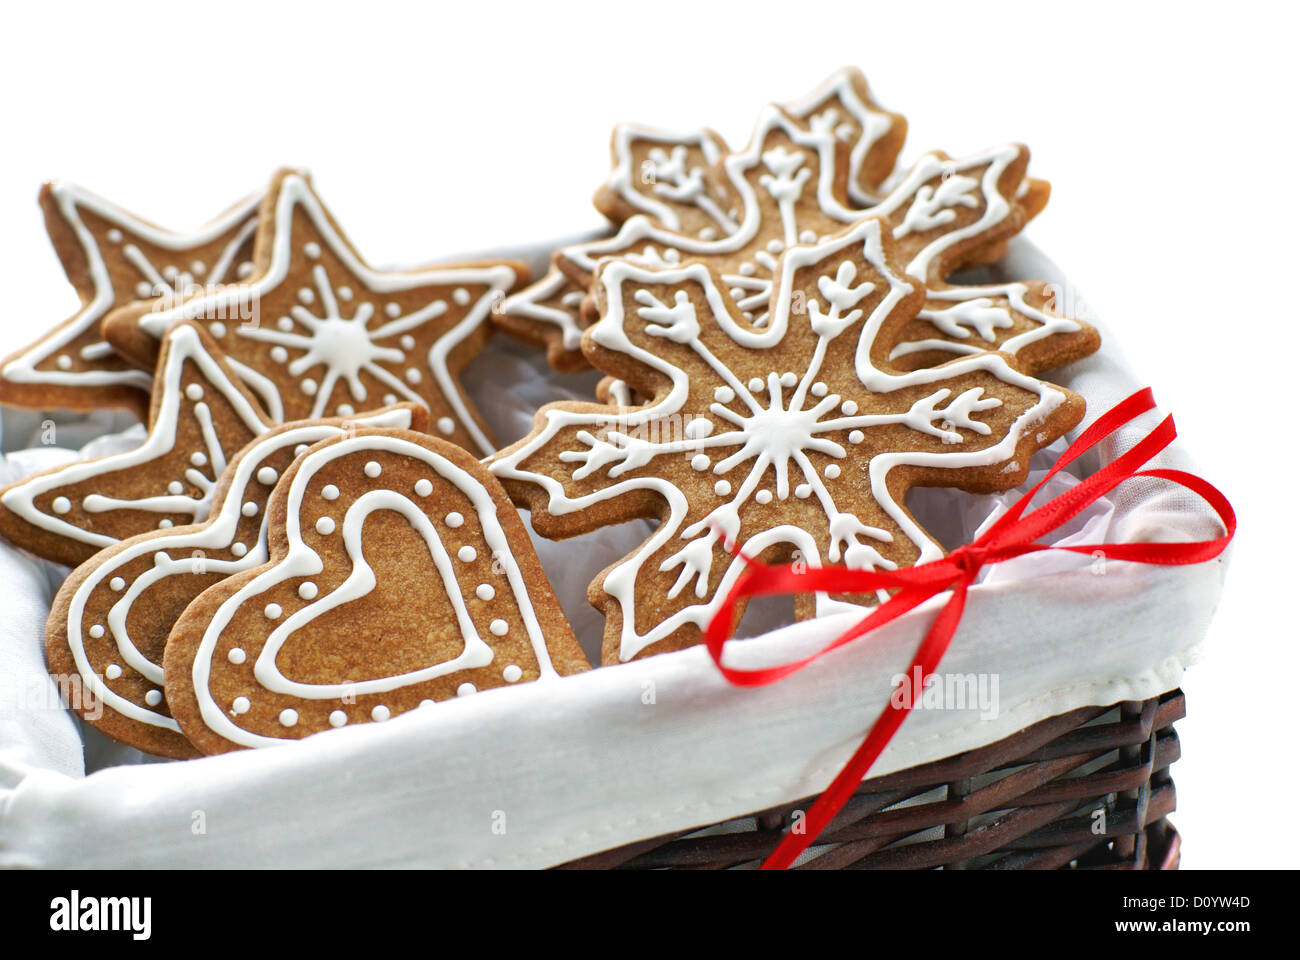 gingerbread-cookies-decorated-with-royal